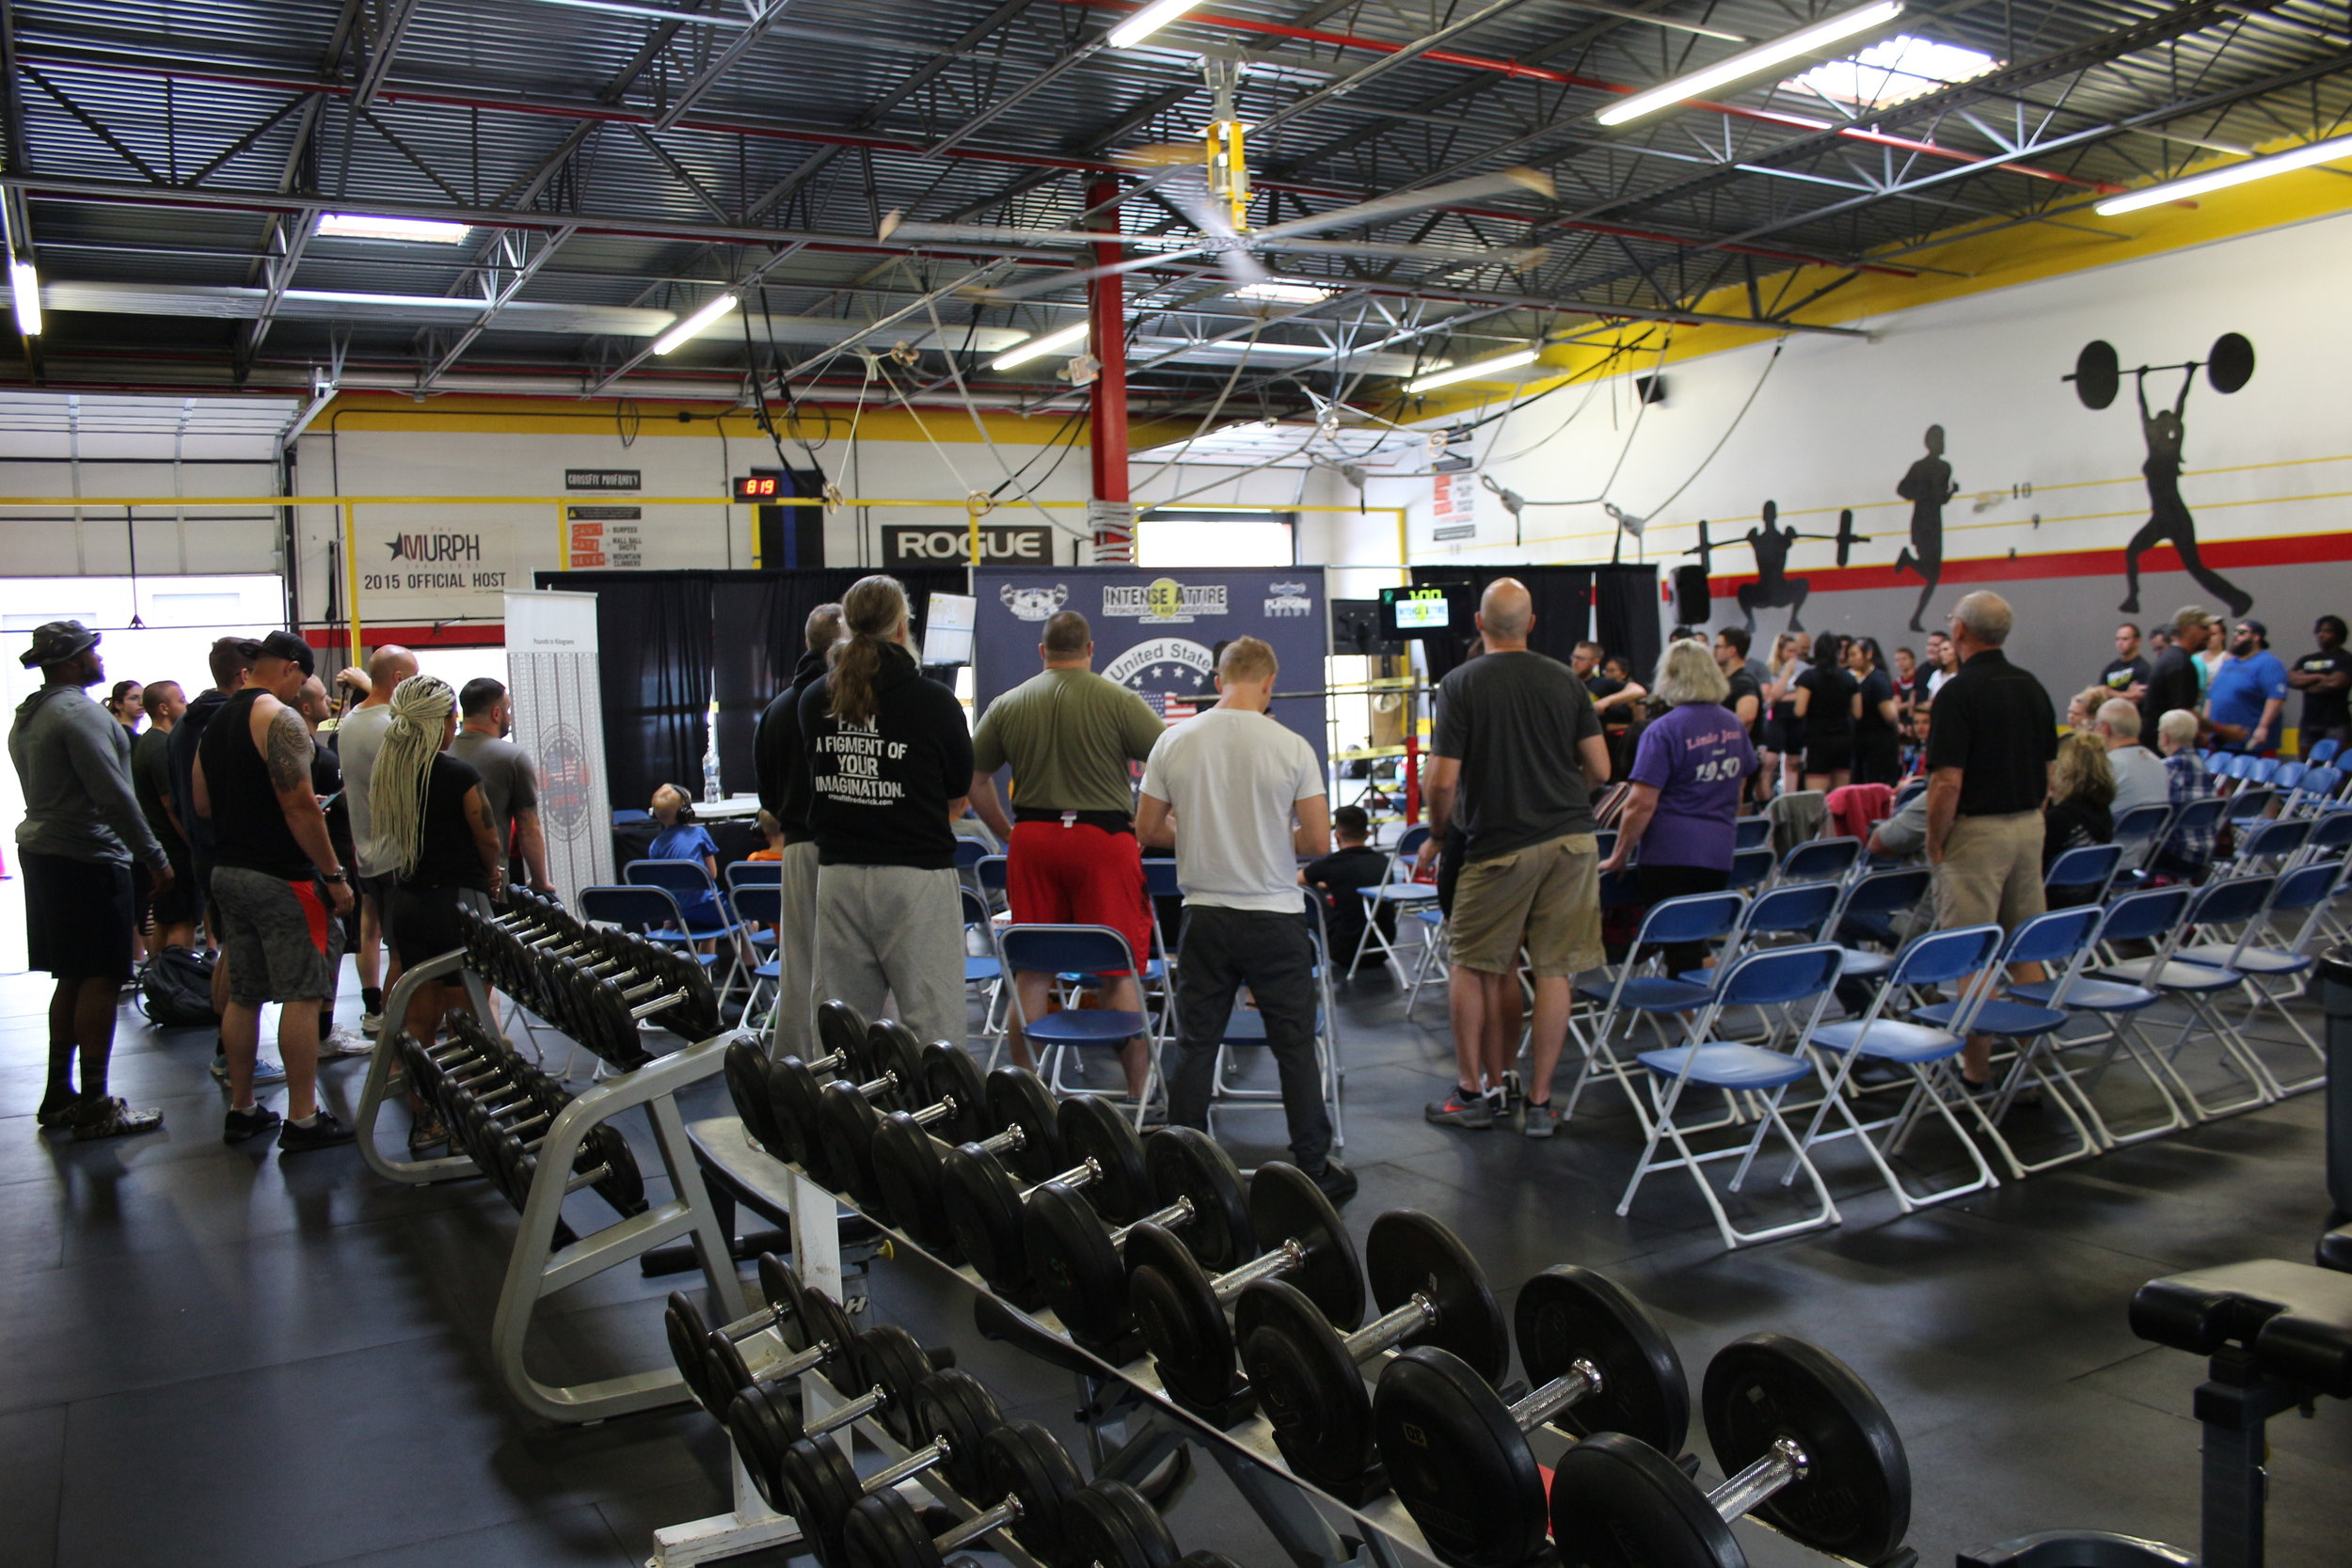 Pre-competition rules and standards for the Drug Tested Maryland State Championships held on August 3rd.